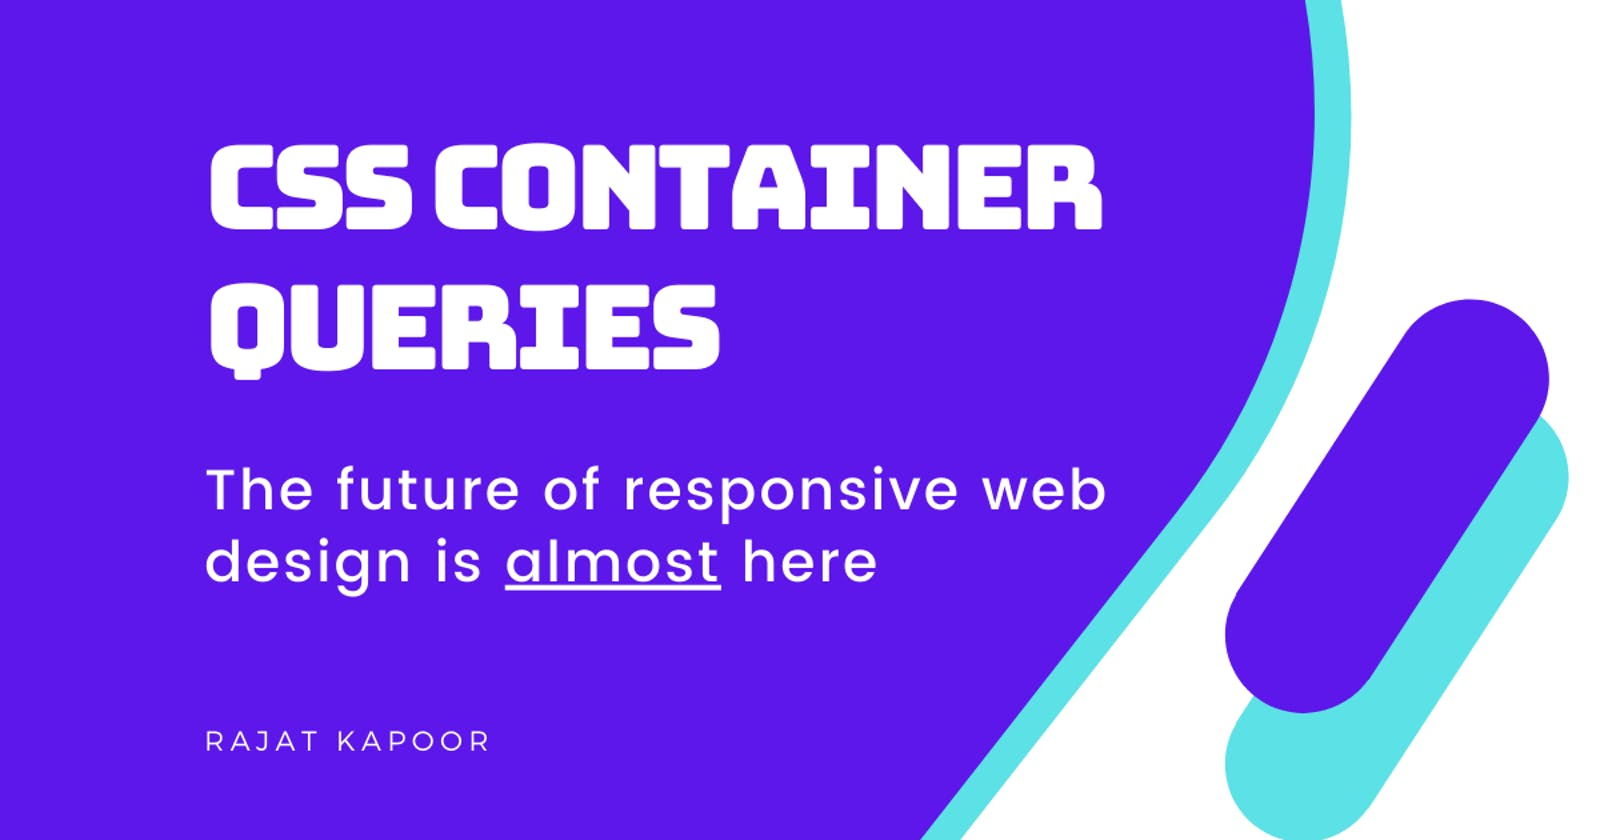 CSS Container Queries - The future of responsive web design is almost here